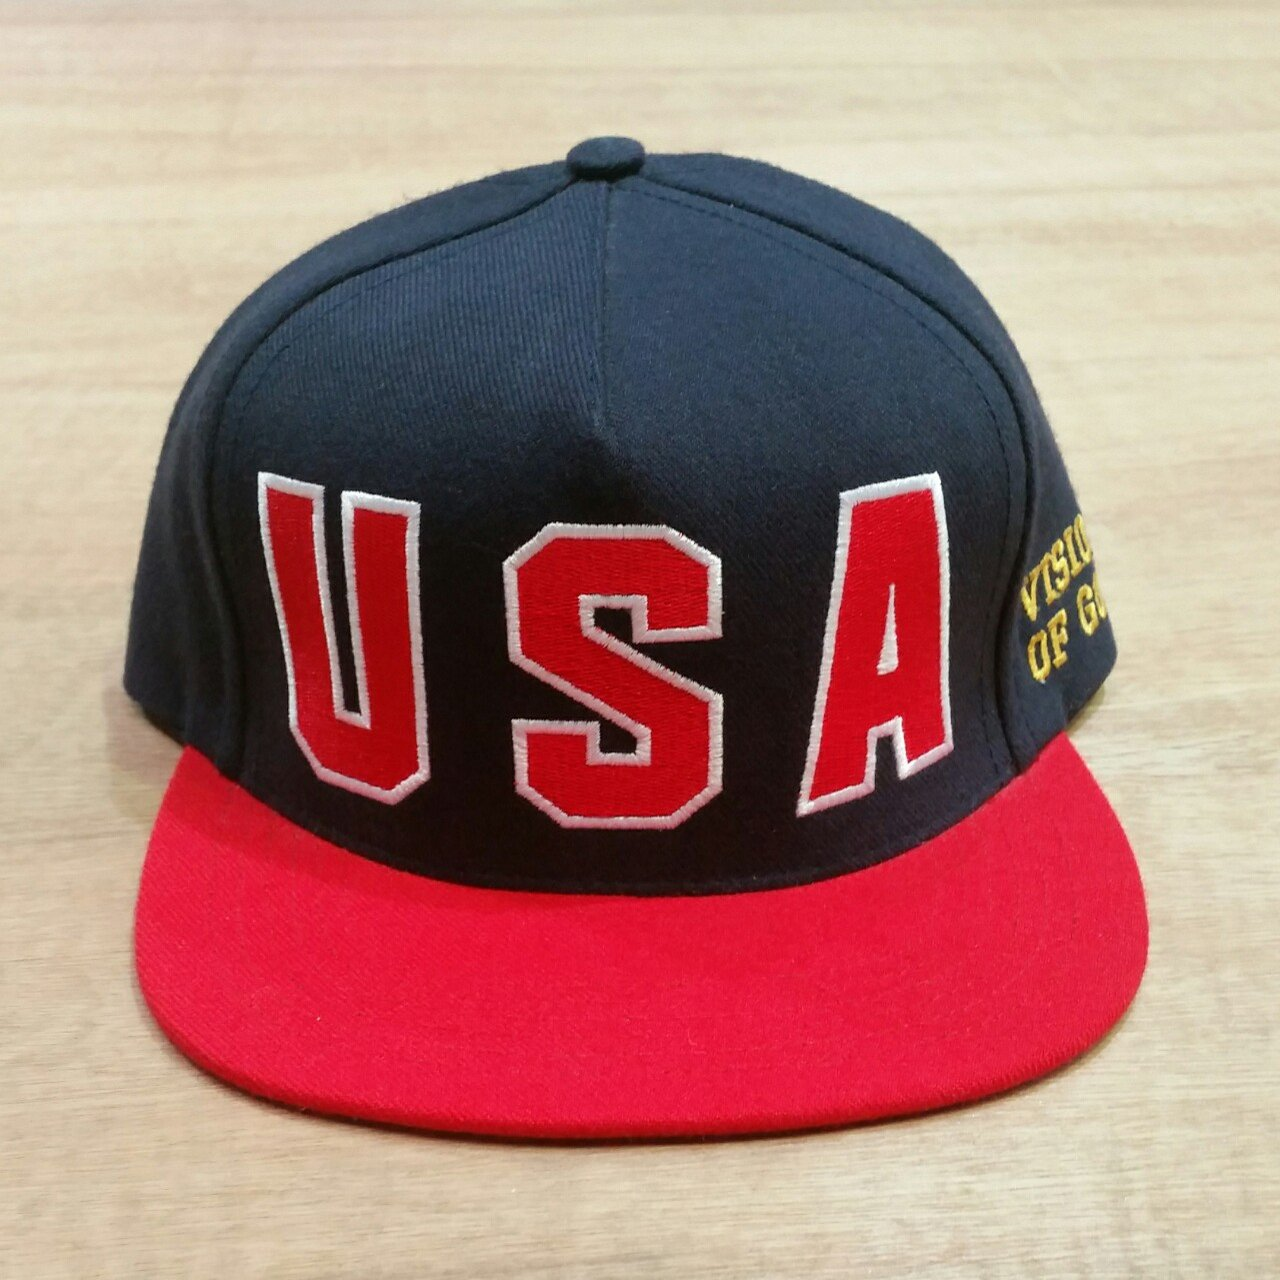 Supreme USA Vision of Gold snapback baseball cap   Condition - Depop 3c1176467e8